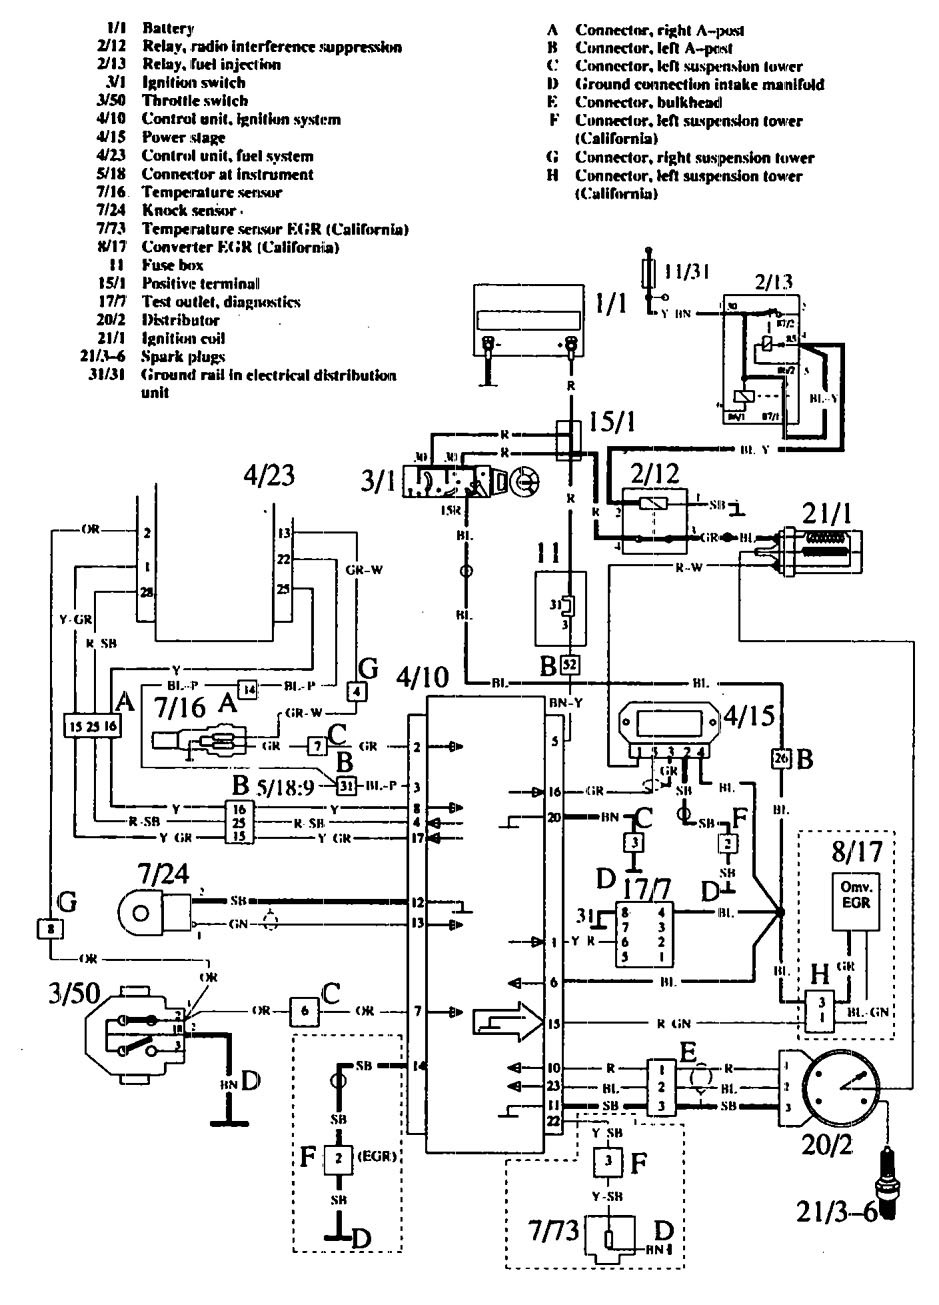 Volvo 760 Wiring Diagram Diagrams S80 Ignition 740 Auto Fuse Box Simple